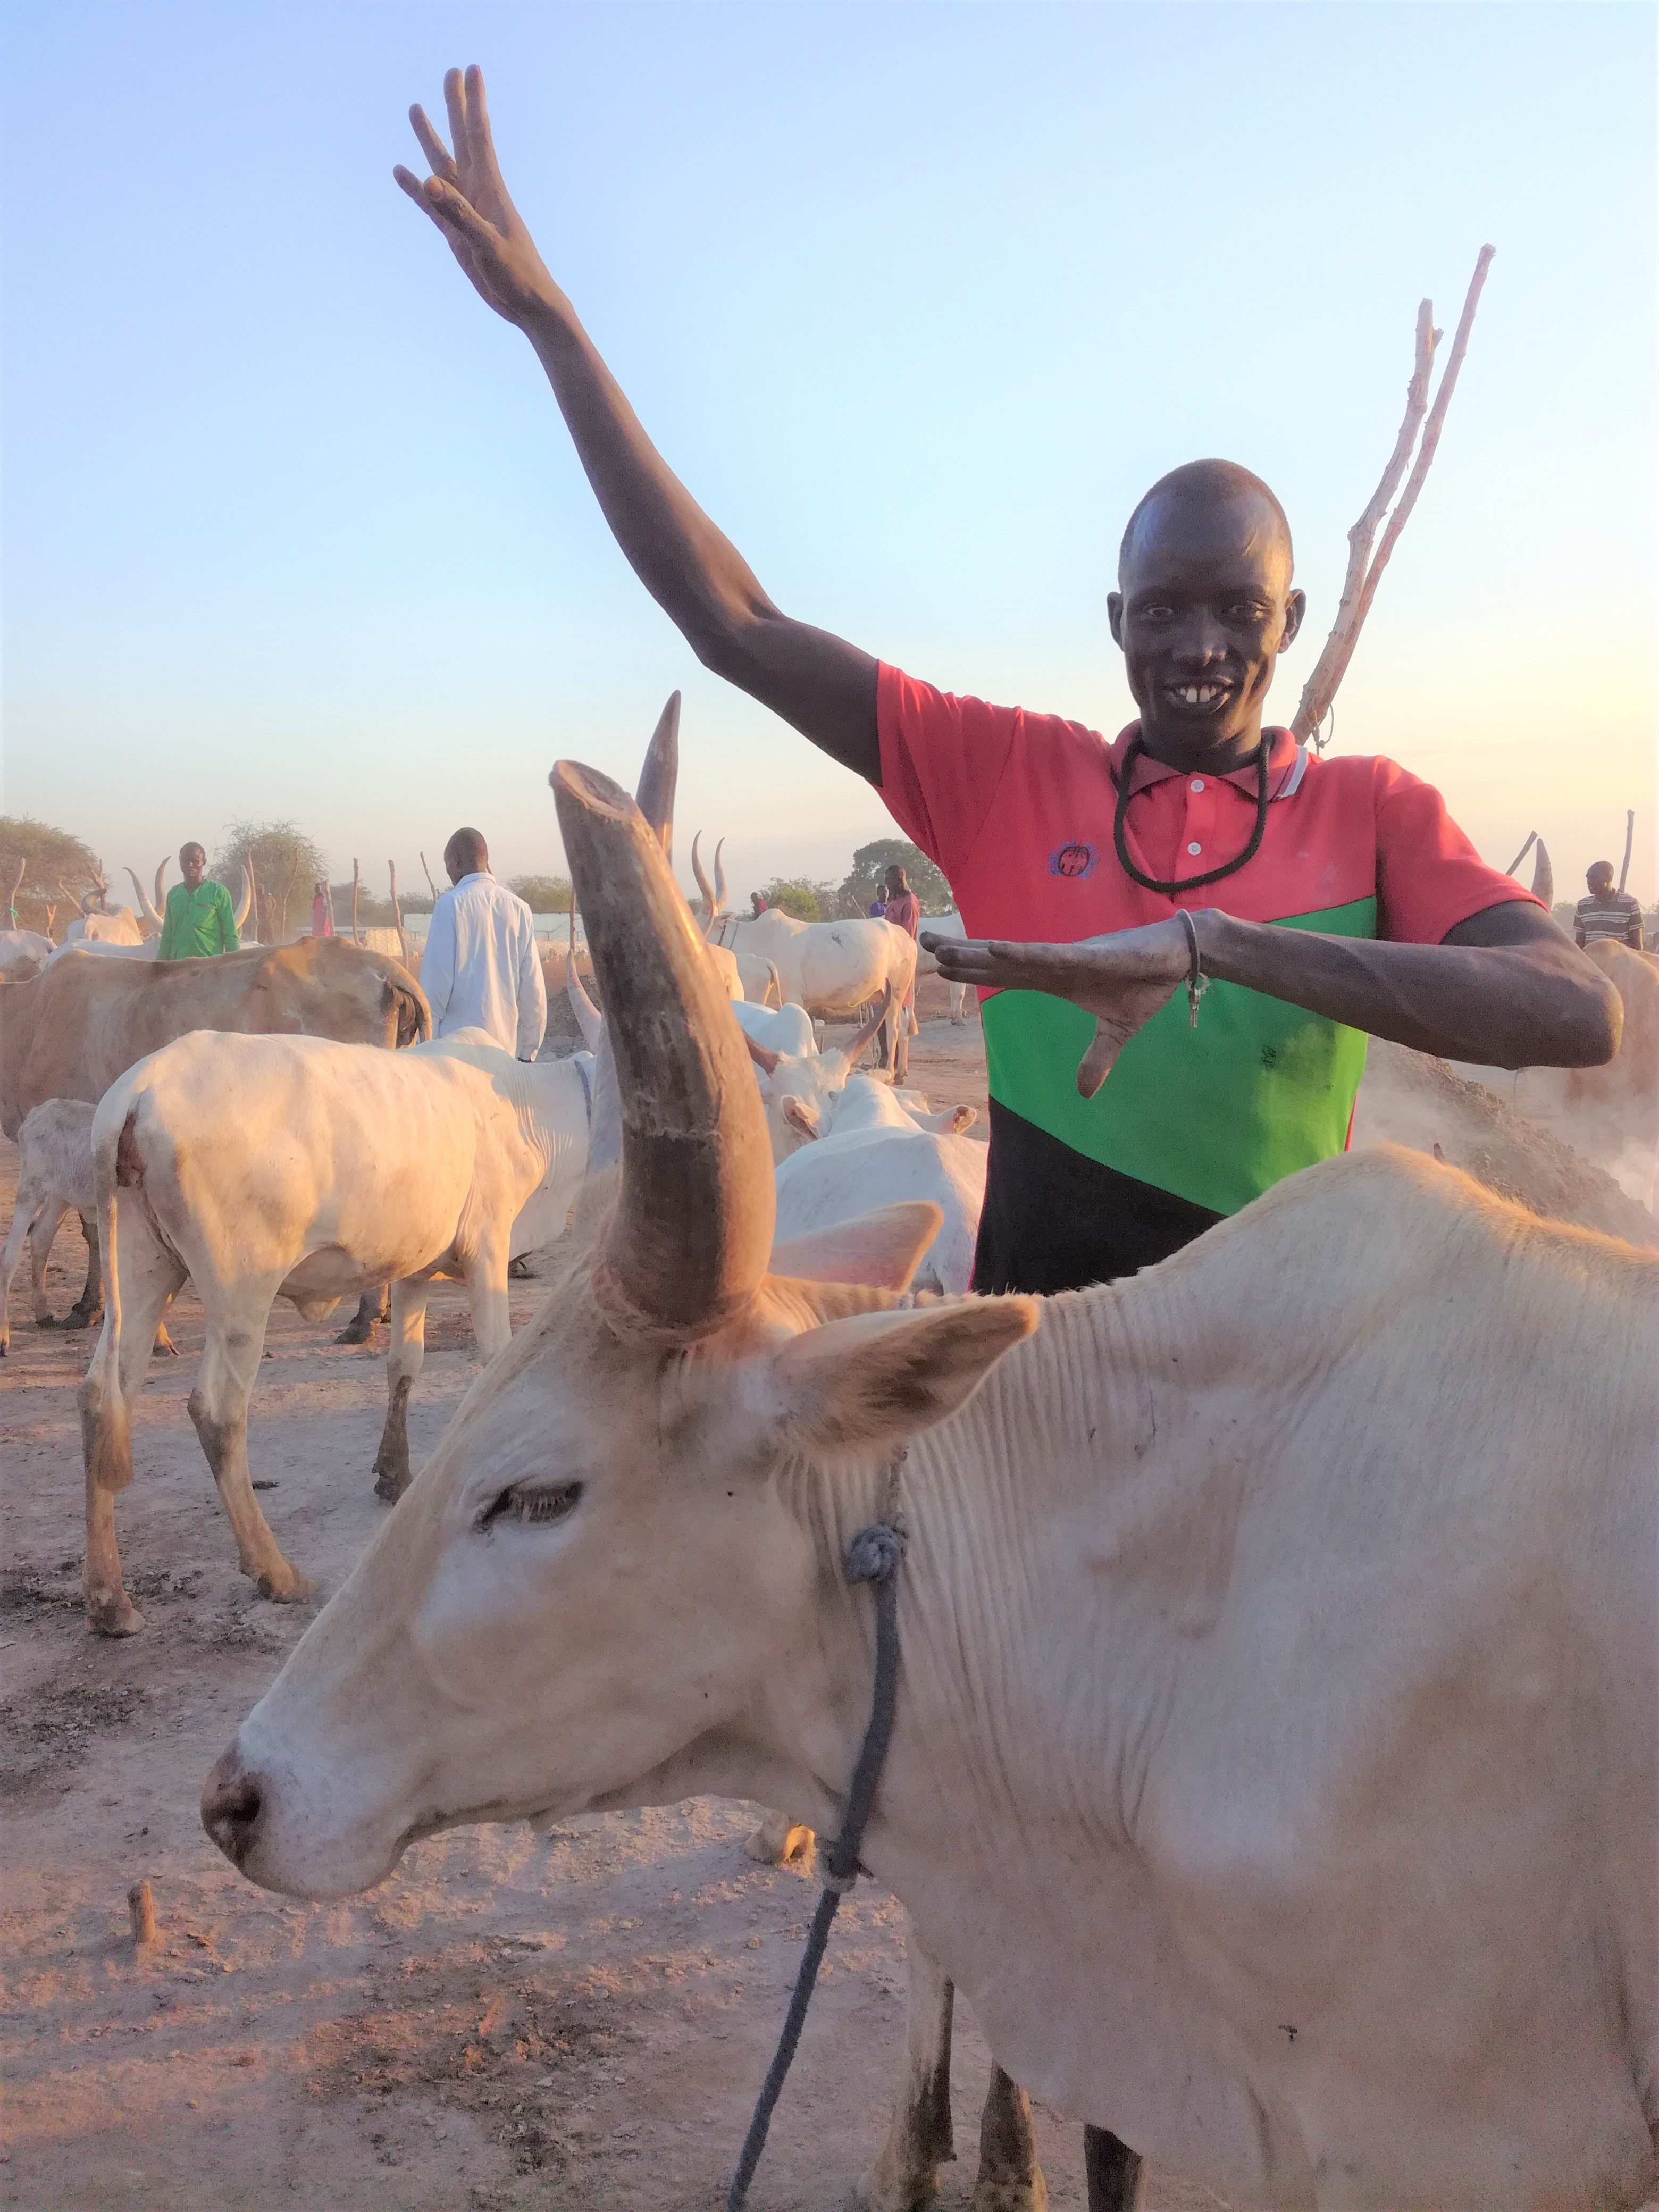 A cattle herder poses for a photo in a cattle camp in Jonglei state during REACH assessment in November 2016. Agro-pastoralist communities in South Sudan rely heavily on livestock for their livelihoods. ©REACH/2018